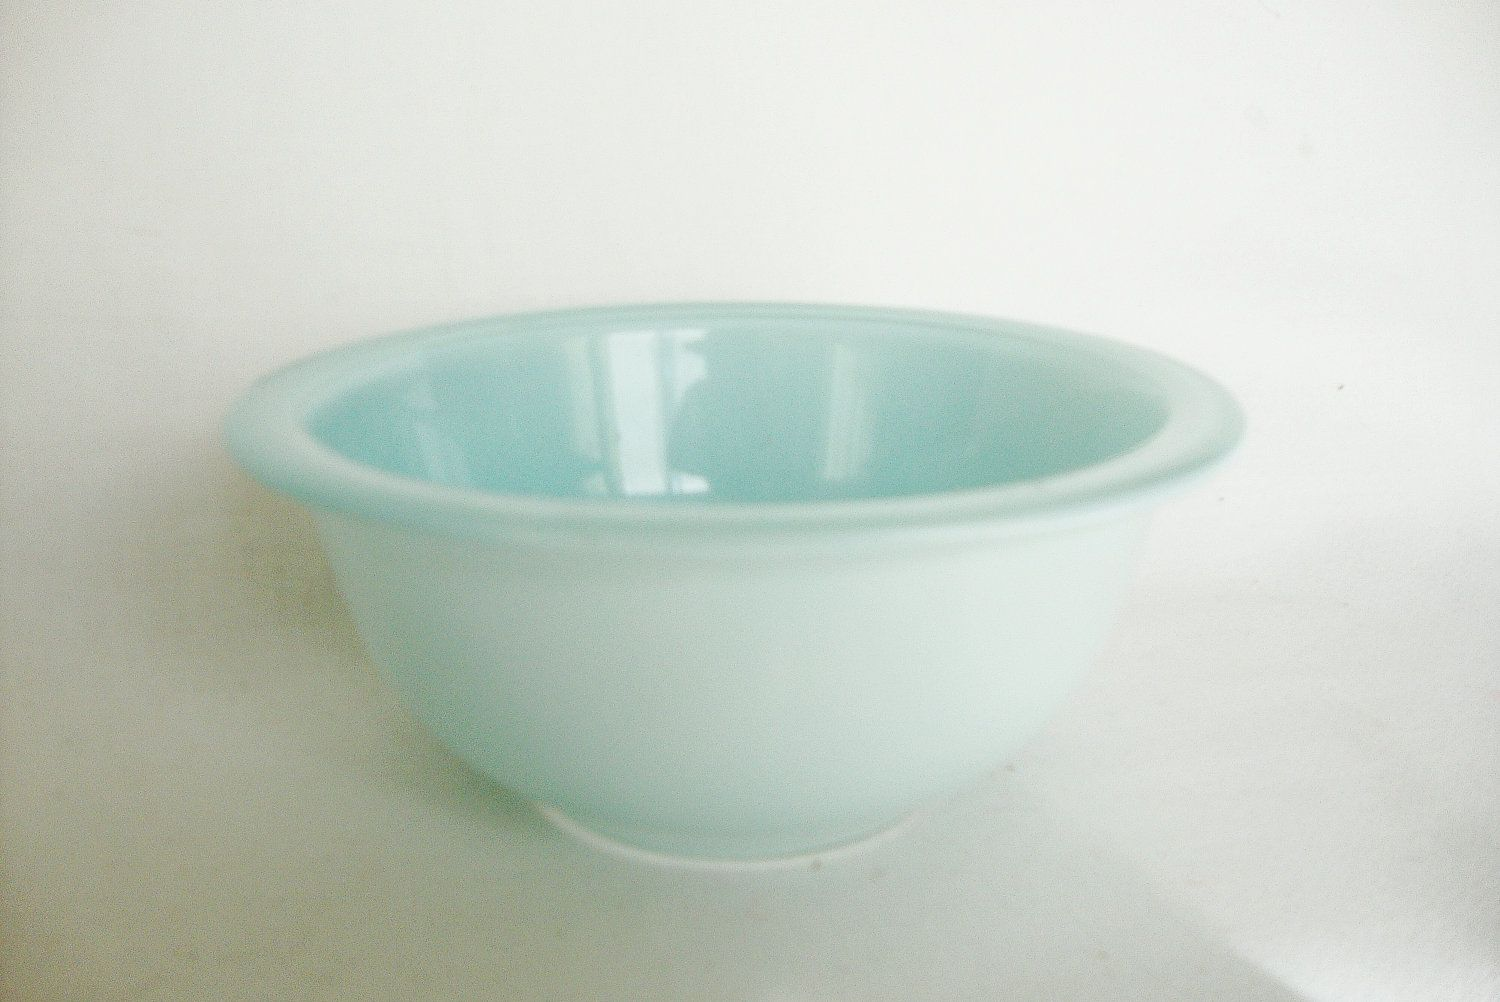 vintage pyrex nesting bowl pale aqua blue frosted glass | Wants: I ...